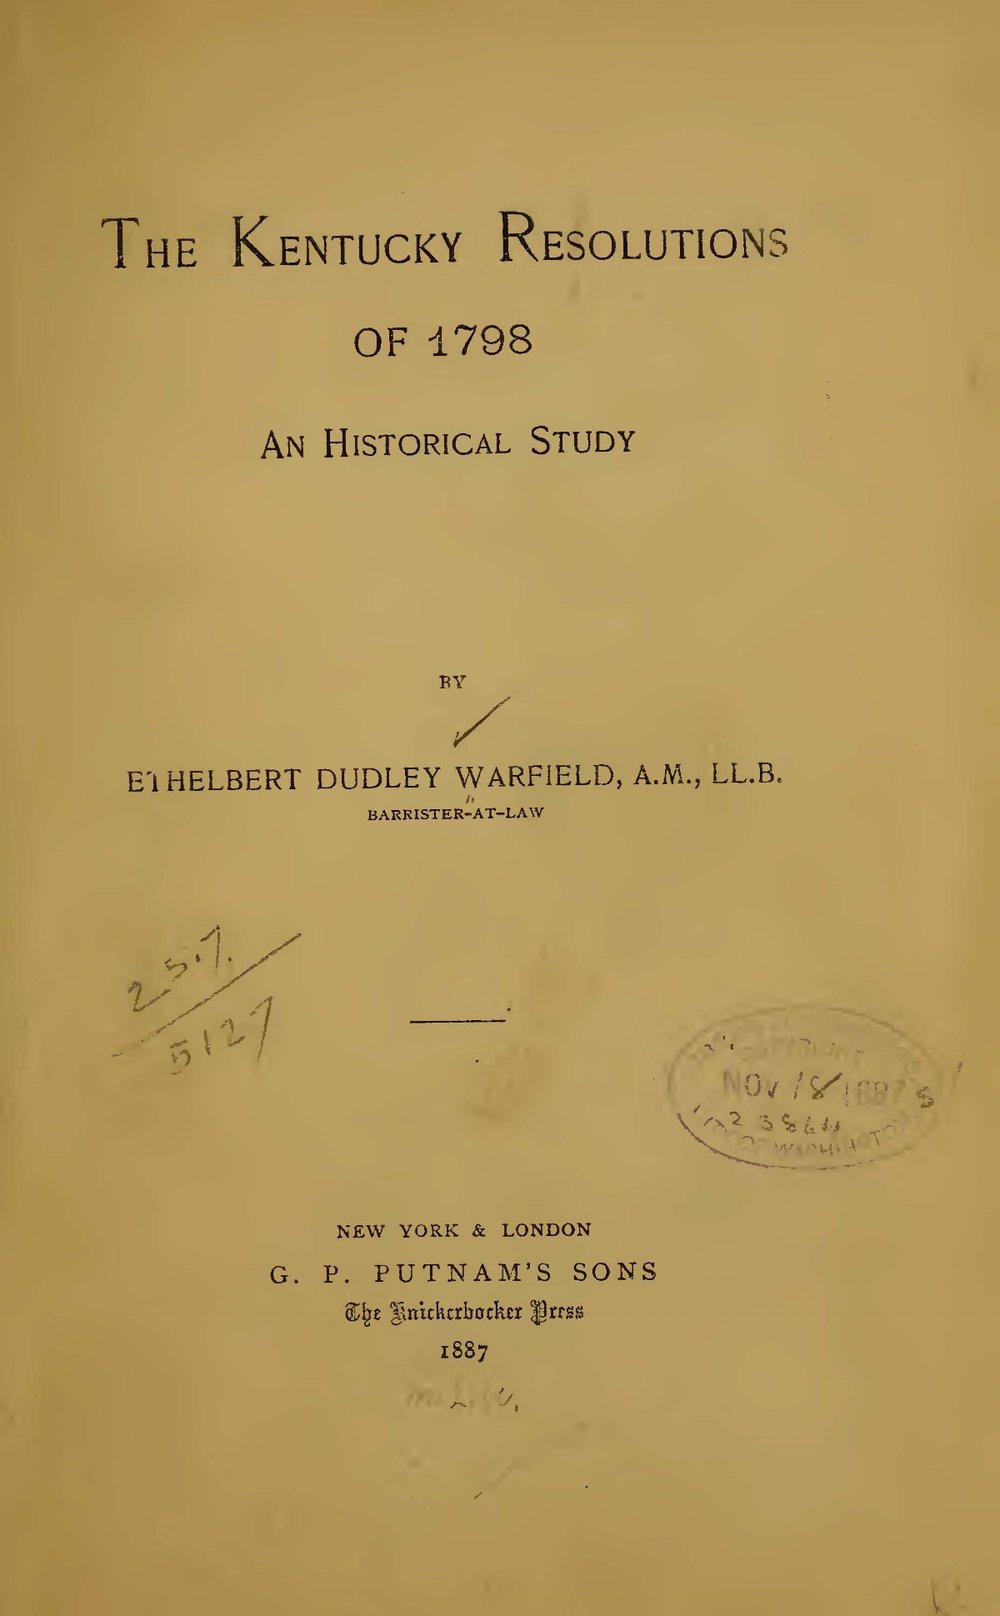 Warfield, Ethelbert Dudley, The Kentucky Resolutions of 1798 Title Page.jpg